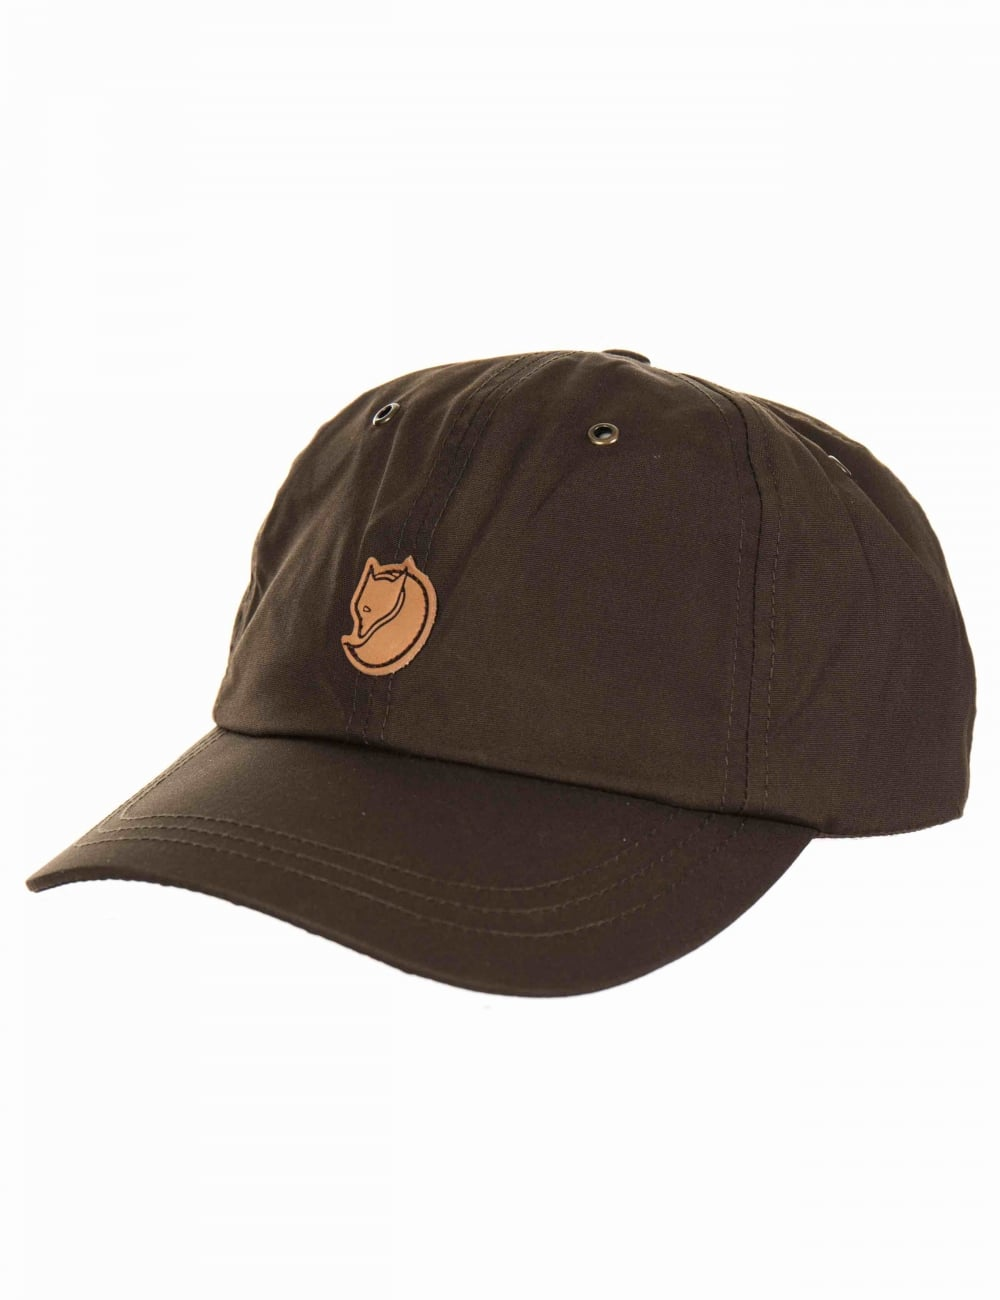 Fjallraven Helags Cap - Dark Olive - Hat Shop from Fat Buddha Store UK f24e61031c5